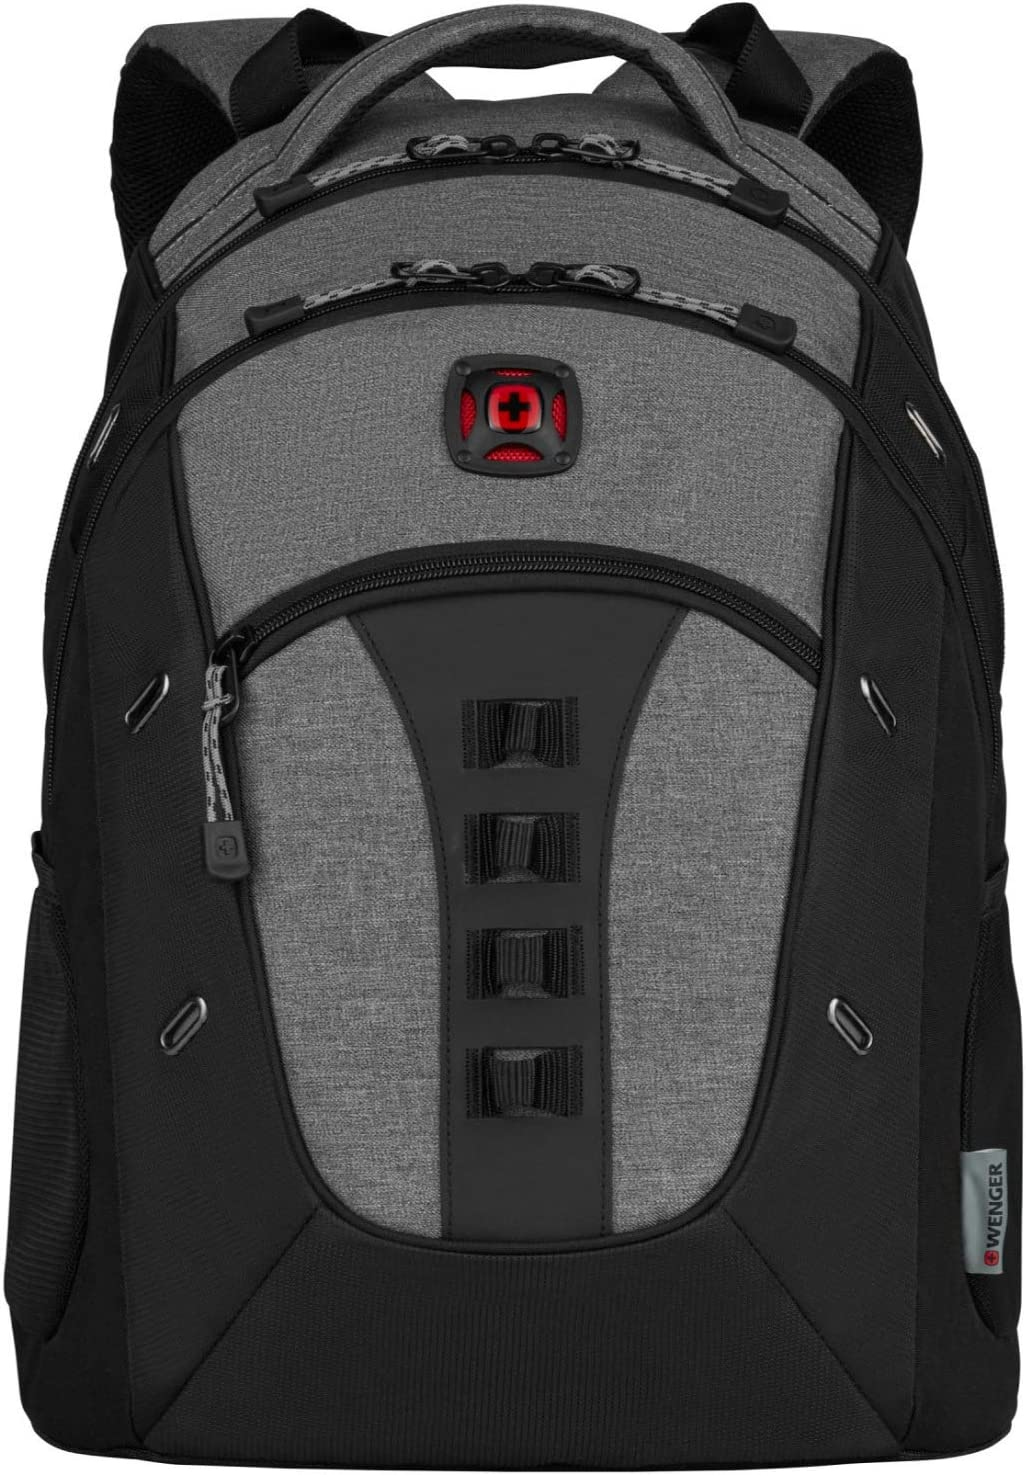 "Swiss Gear Wenger North America Granite 16"" laptop Backpack - Gray"